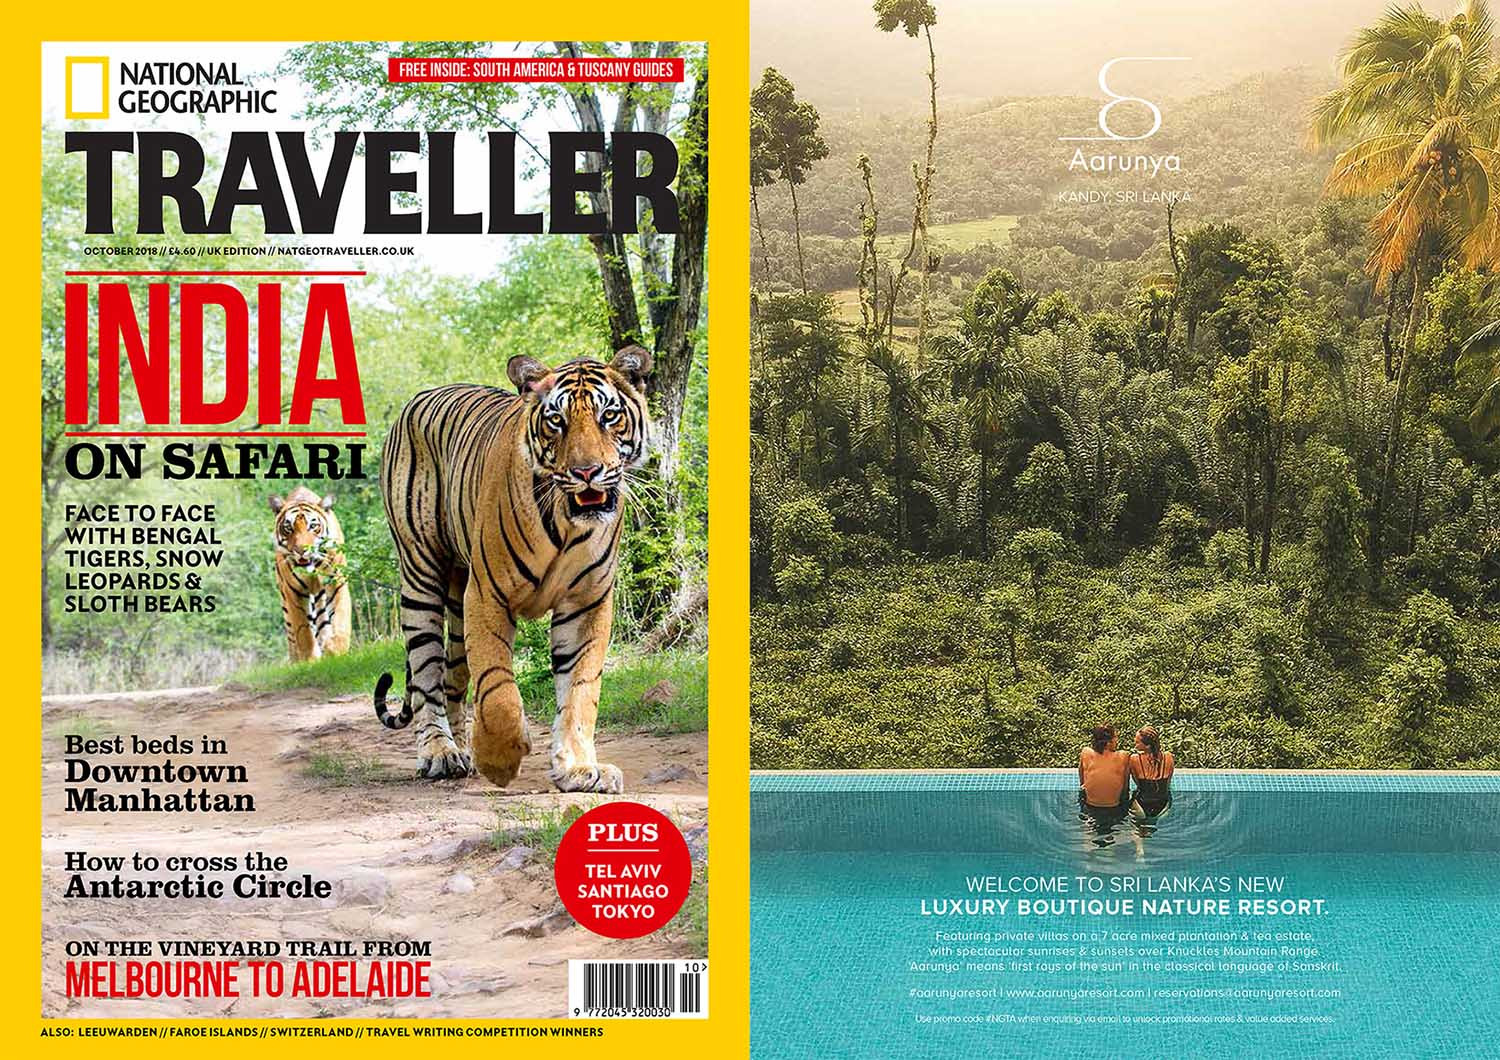 Aarunya Resort As Seen in National Geographic Traveller (United Kingdom) October 2018 Issue.